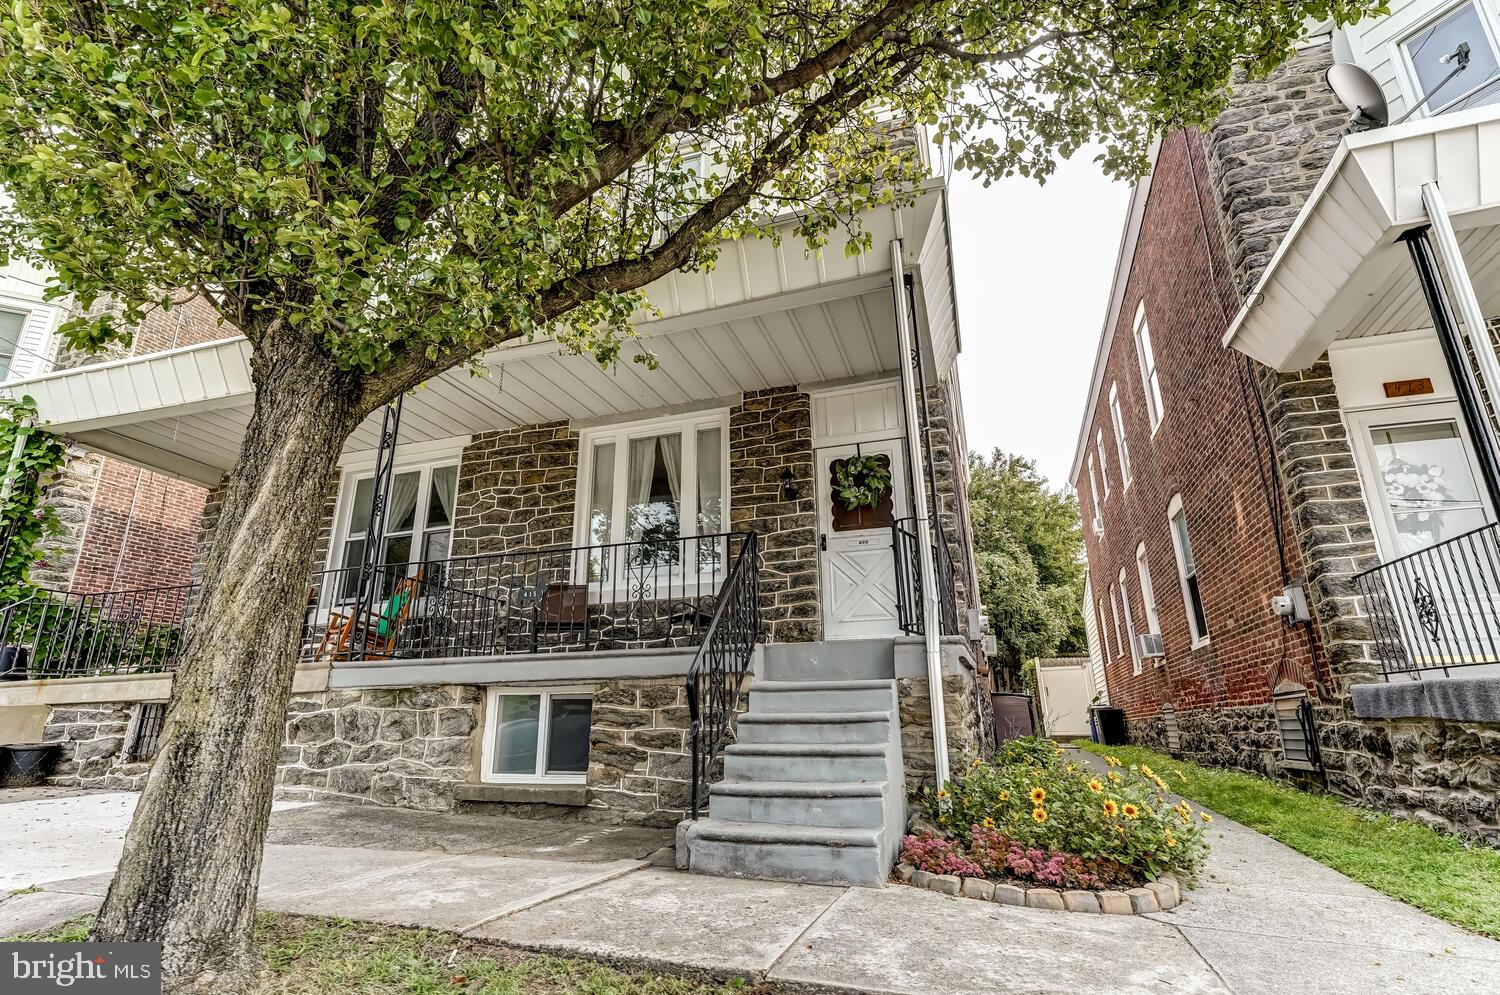 Move-in ready stone twin in the heart of highly sought-after Manayunk/Roxborough!  The spacious first floor includes a livingroom, dining room and kitchen and has new hardwood plank flooring and is freshly painted. A good-sized laundry room/mudroom and half bath, as well as both front and back staircases round out the first floor. Upstairs you will find 3 generously sized and freshly painted bedrooms, all with roomy closets and also with new hardwood plank flooring. A full bath completes the 2nd second floor. But wait, that's not all! The huge and tidy basement has high ceilings and is just waiting for your workshop, storage or even to be finished for additional living/entertaining space. The fenced in backyard with concrete patio and front porch provide outdoor space and extra green space across the street gives the block an open and airy feel. Public transportation, ample parking and Daisy & La Noce Parks are all walkable, as is the Wissahickon/Fairmount park system as well as all Manayunk has to offer. Schedule your showing today!